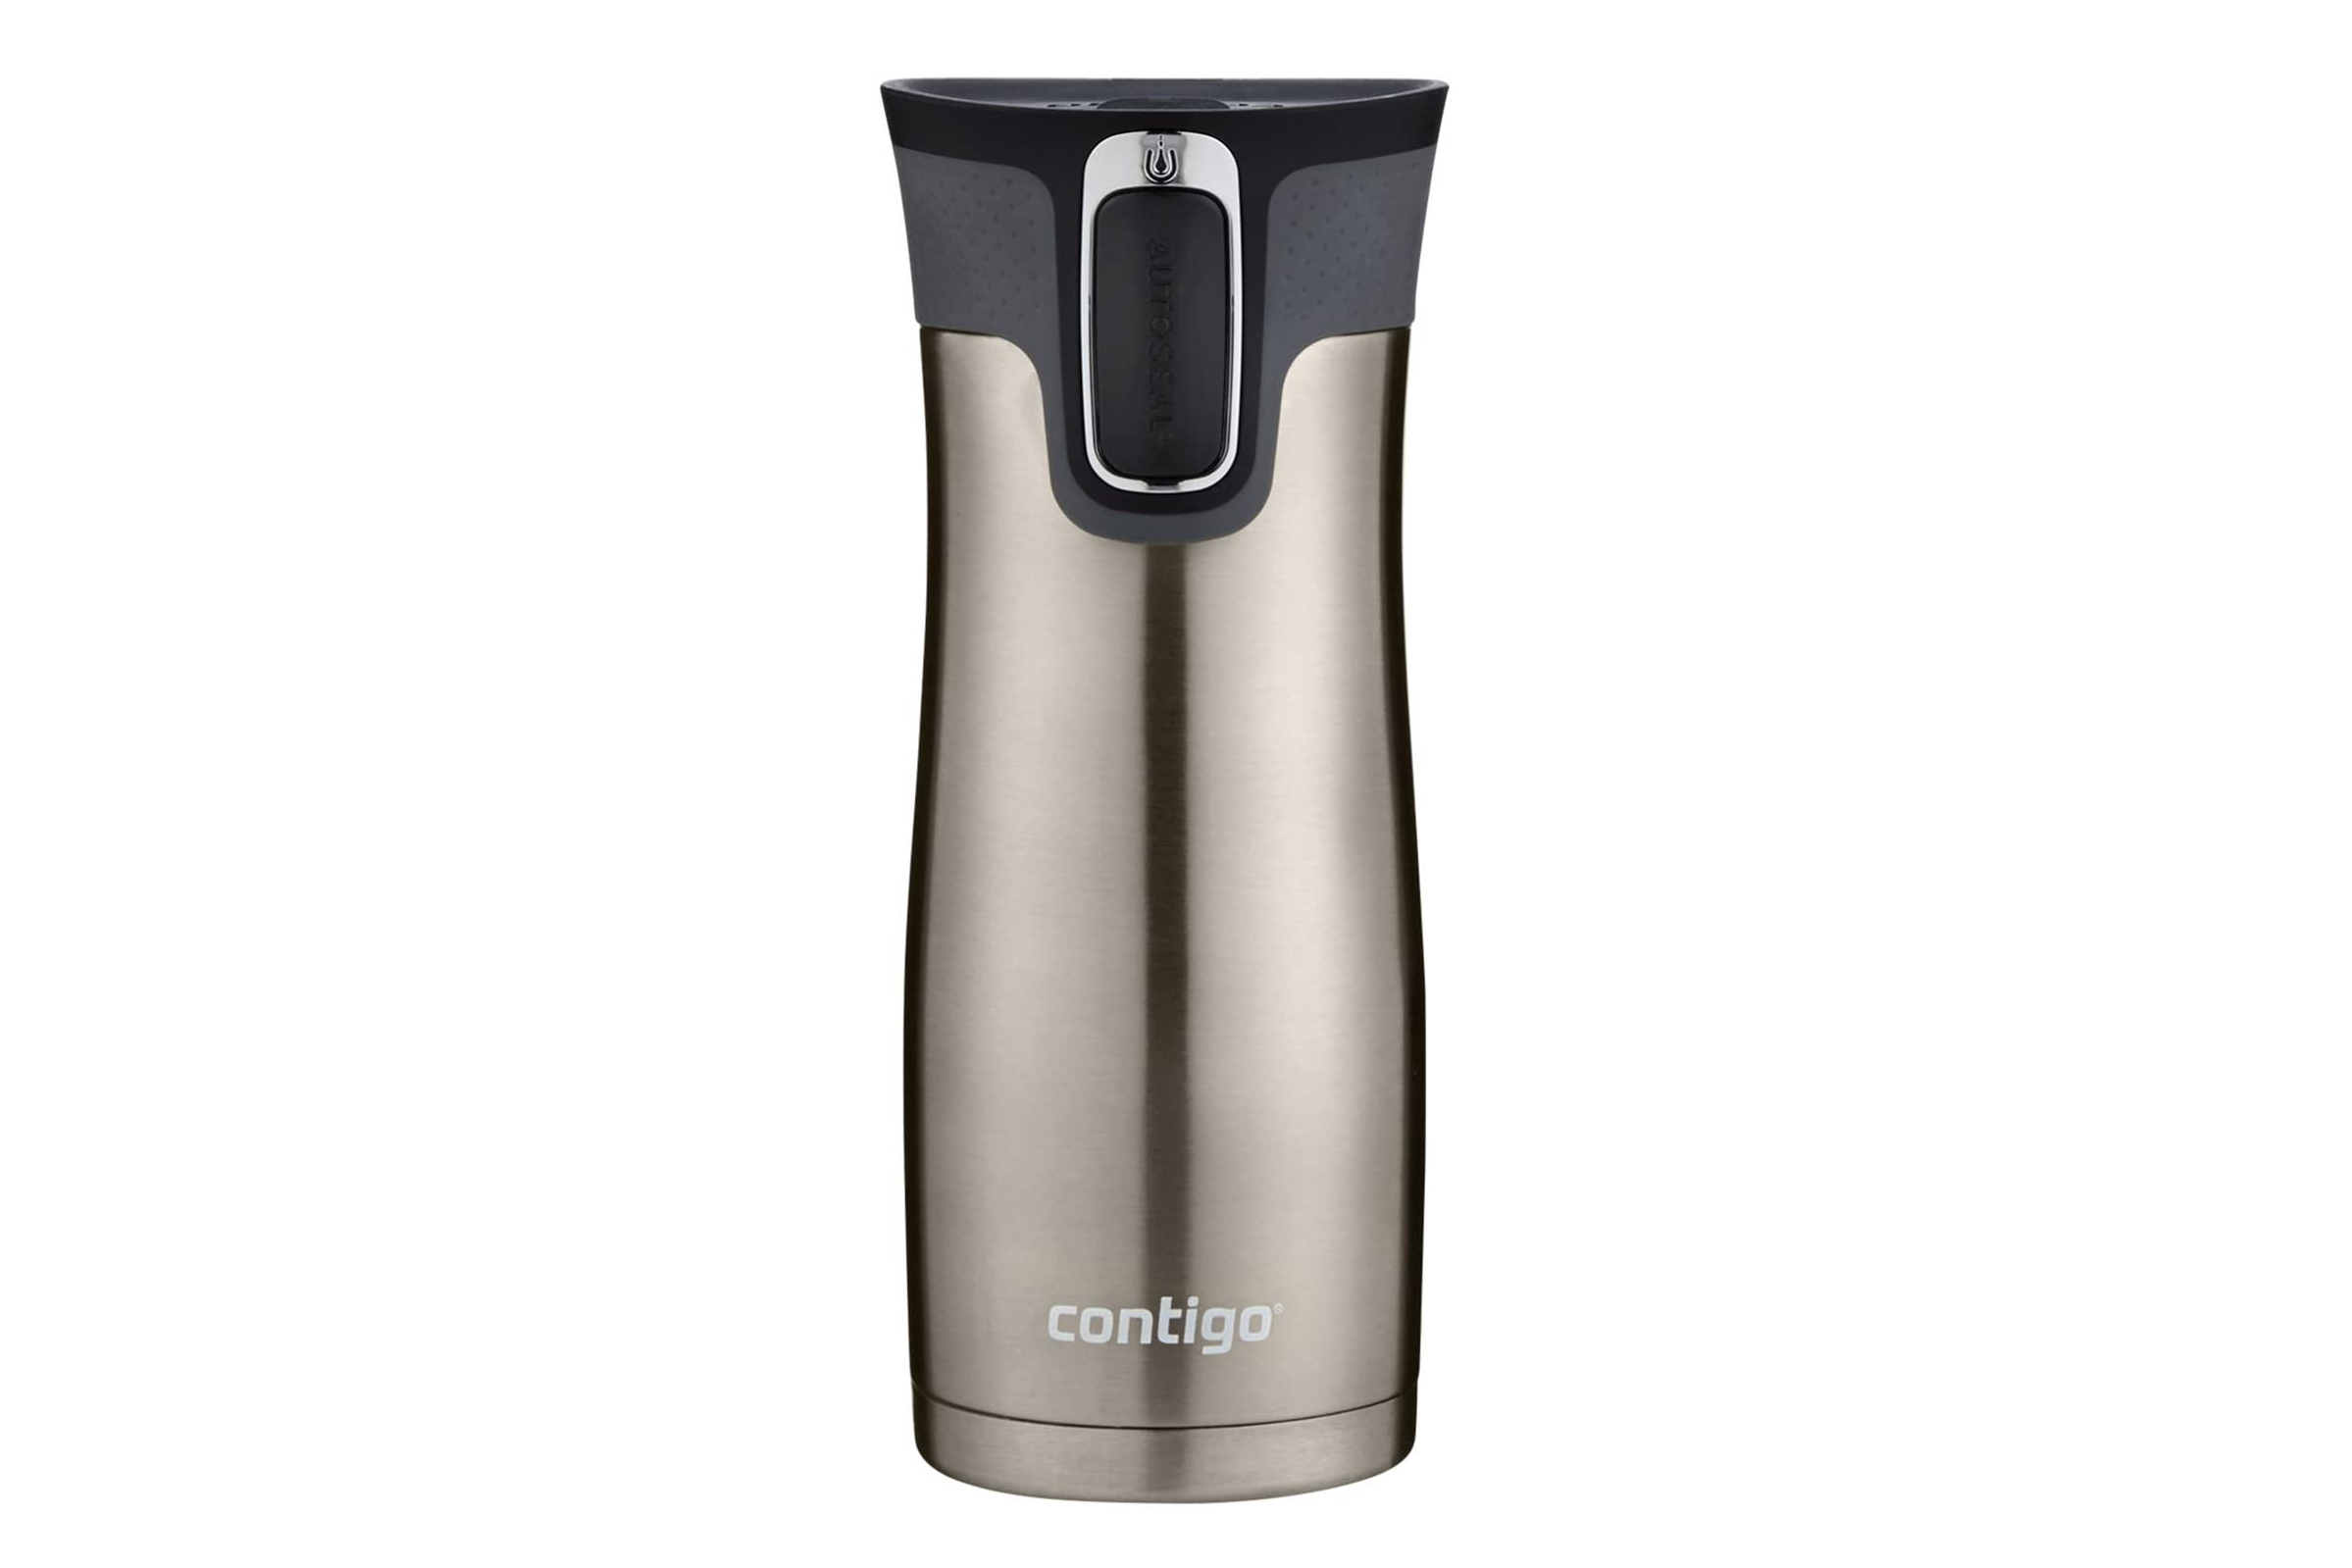 a silver and black Contigo Stainless Steel Autoseal West Loop Vaccuum-Insulated Travel Mug on a white background